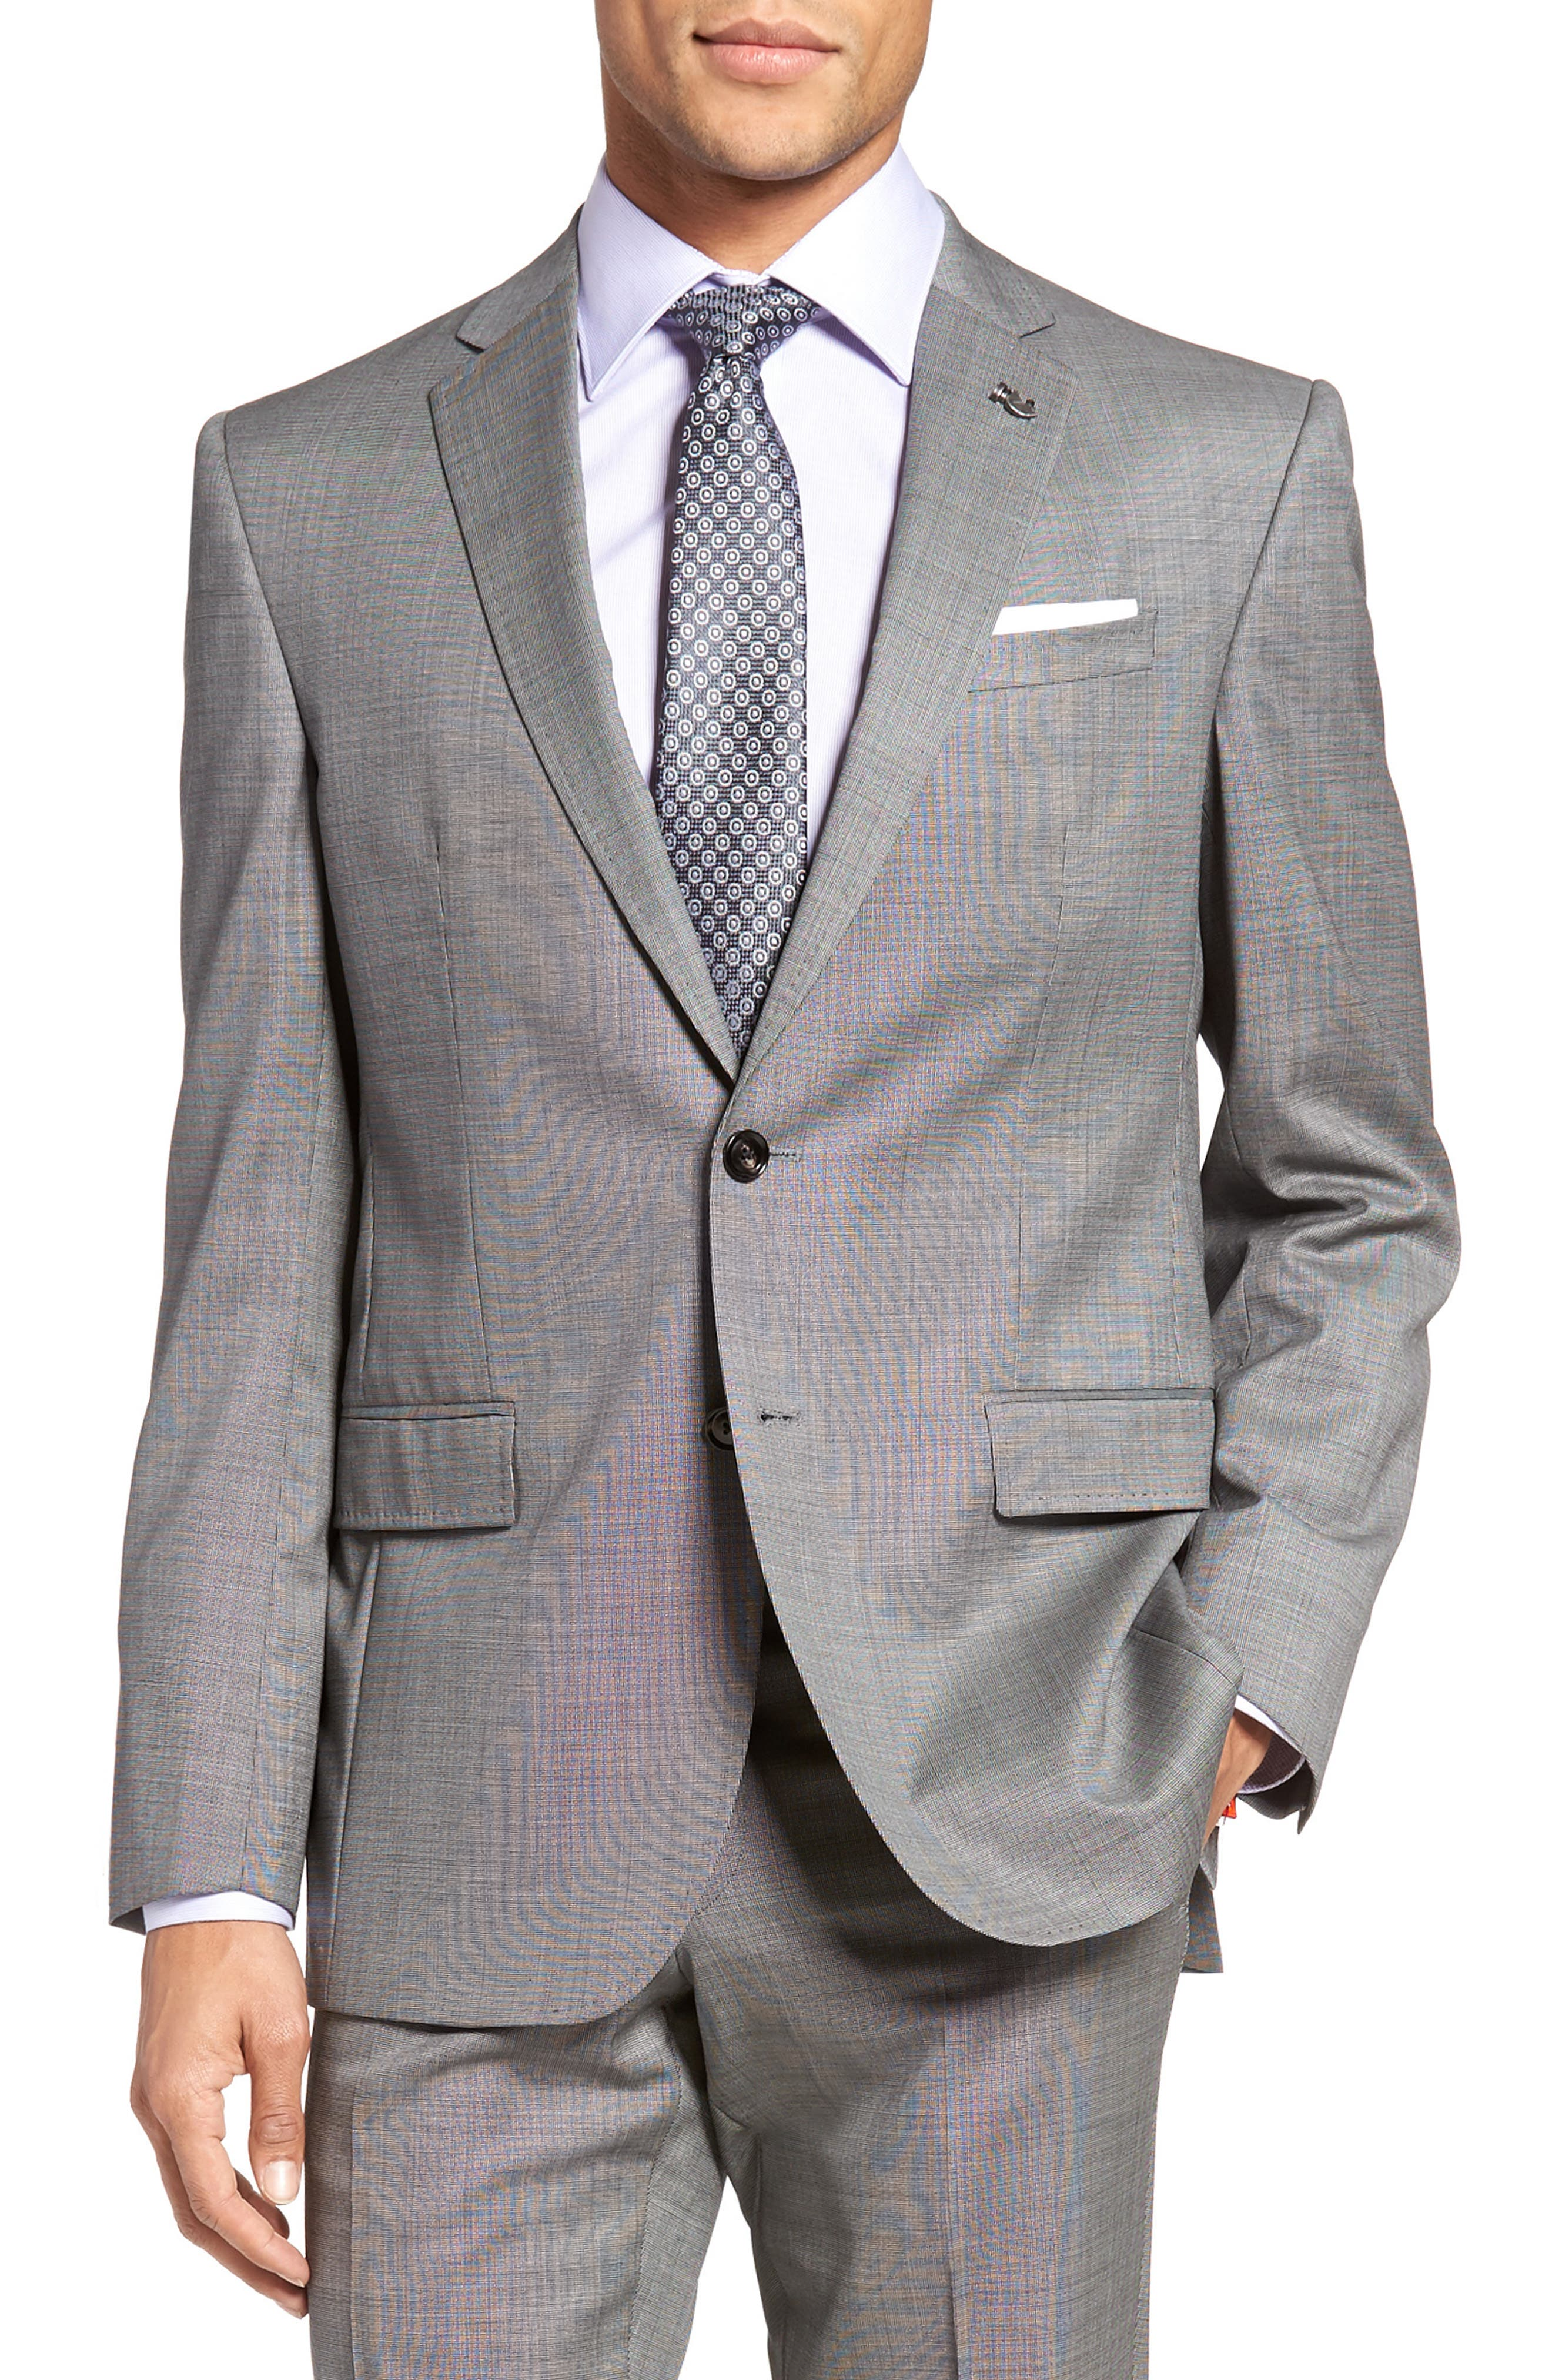 Jay Trim Fit Solid Wool Suit,                             Alternate thumbnail 5, color,                             Light Grey